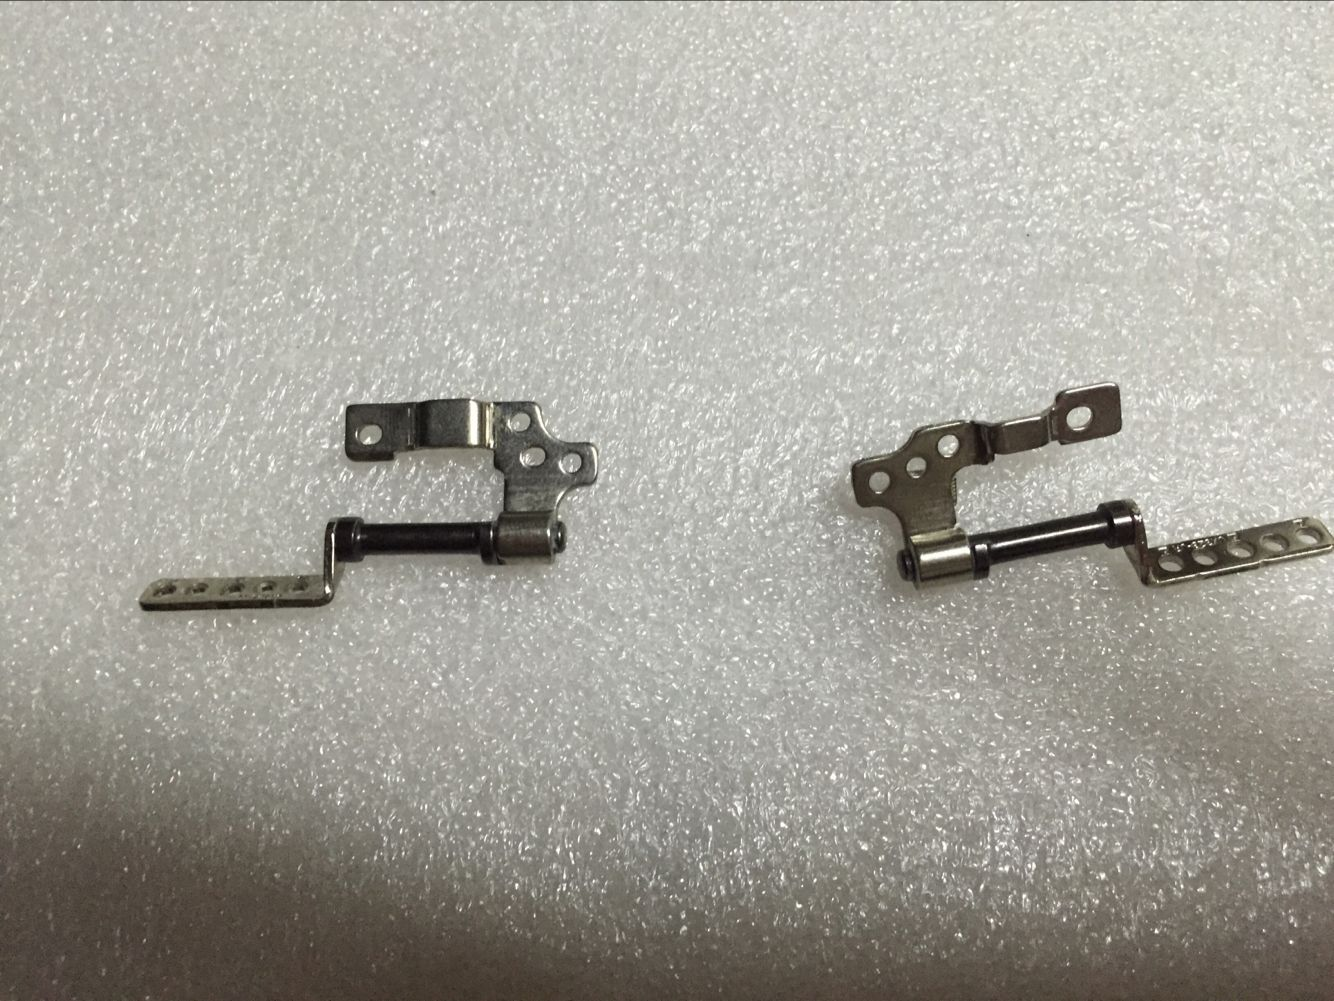 LED LCD Screen Hinge For ASUS UX32 UX32VD UX32S UX32K UX32S-SL UX32S-SR Series Laptop Hinges Left + Right Not Touch